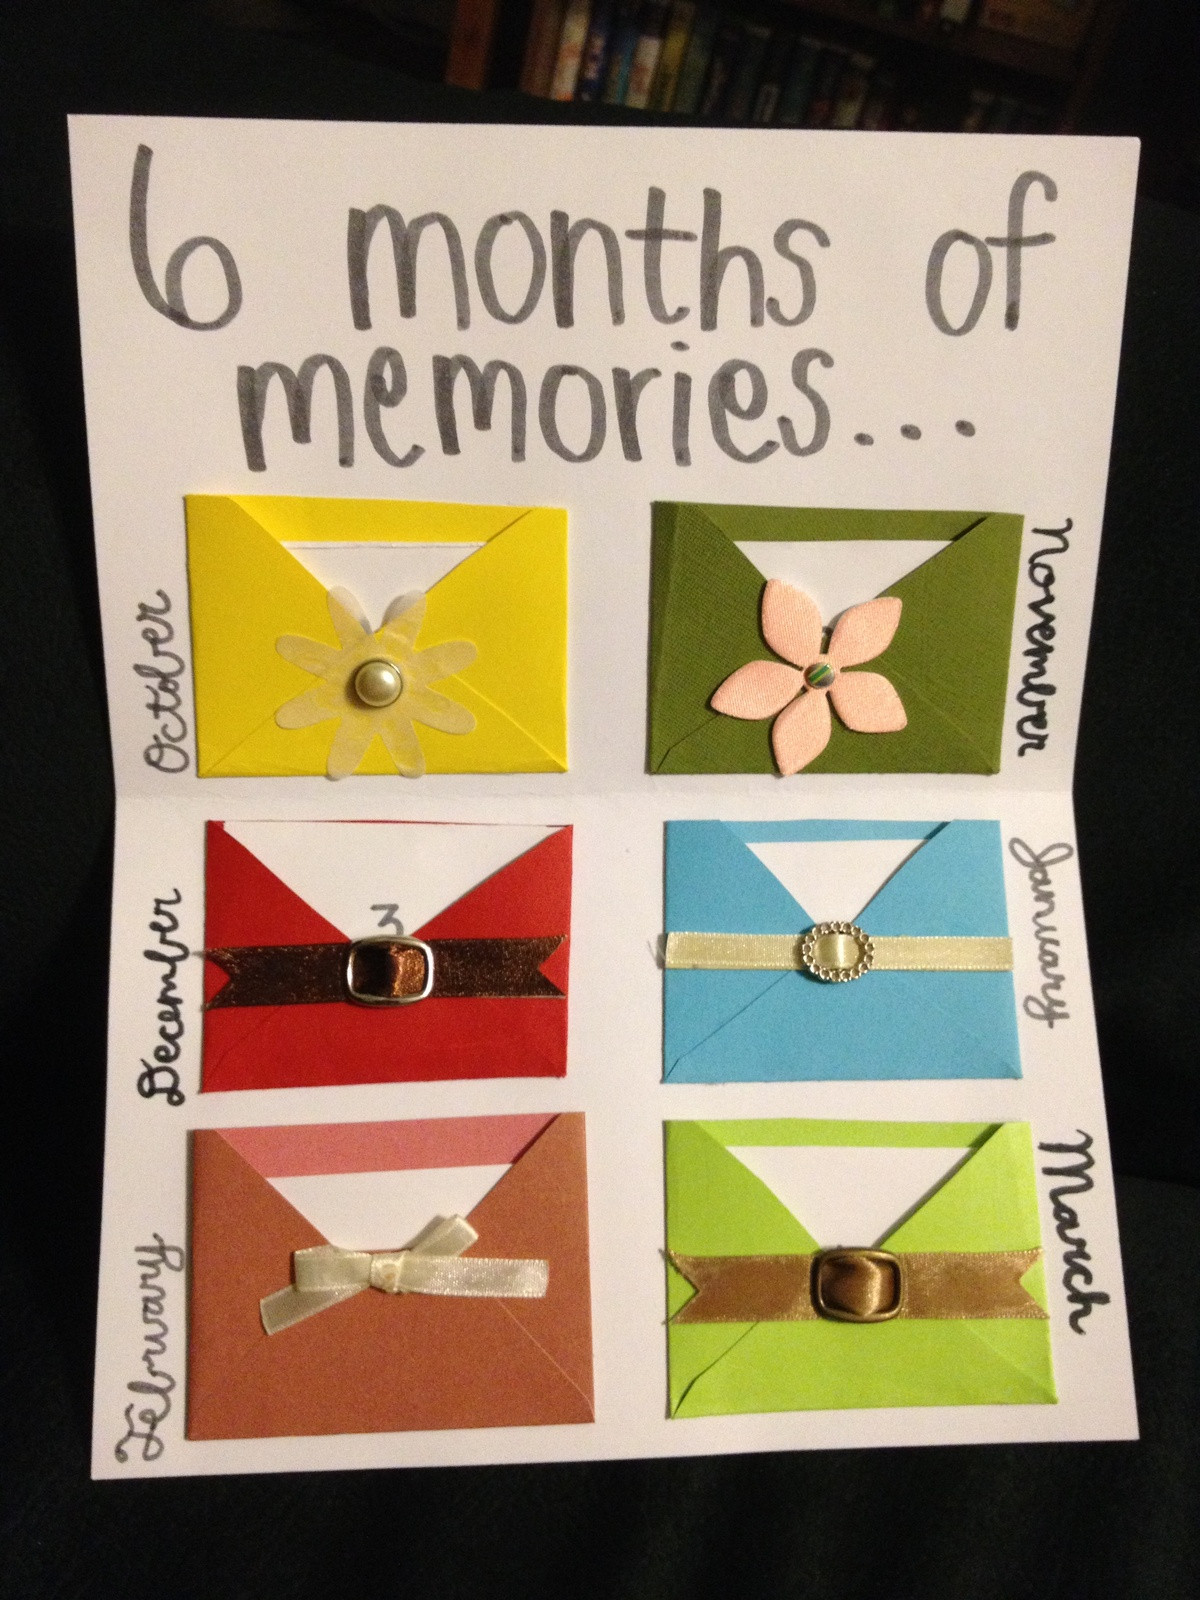 Best ideas about 6 Year Anniversary Gift Ideas . Save or Pin 6 Month Anniversary on Pinterest Now.